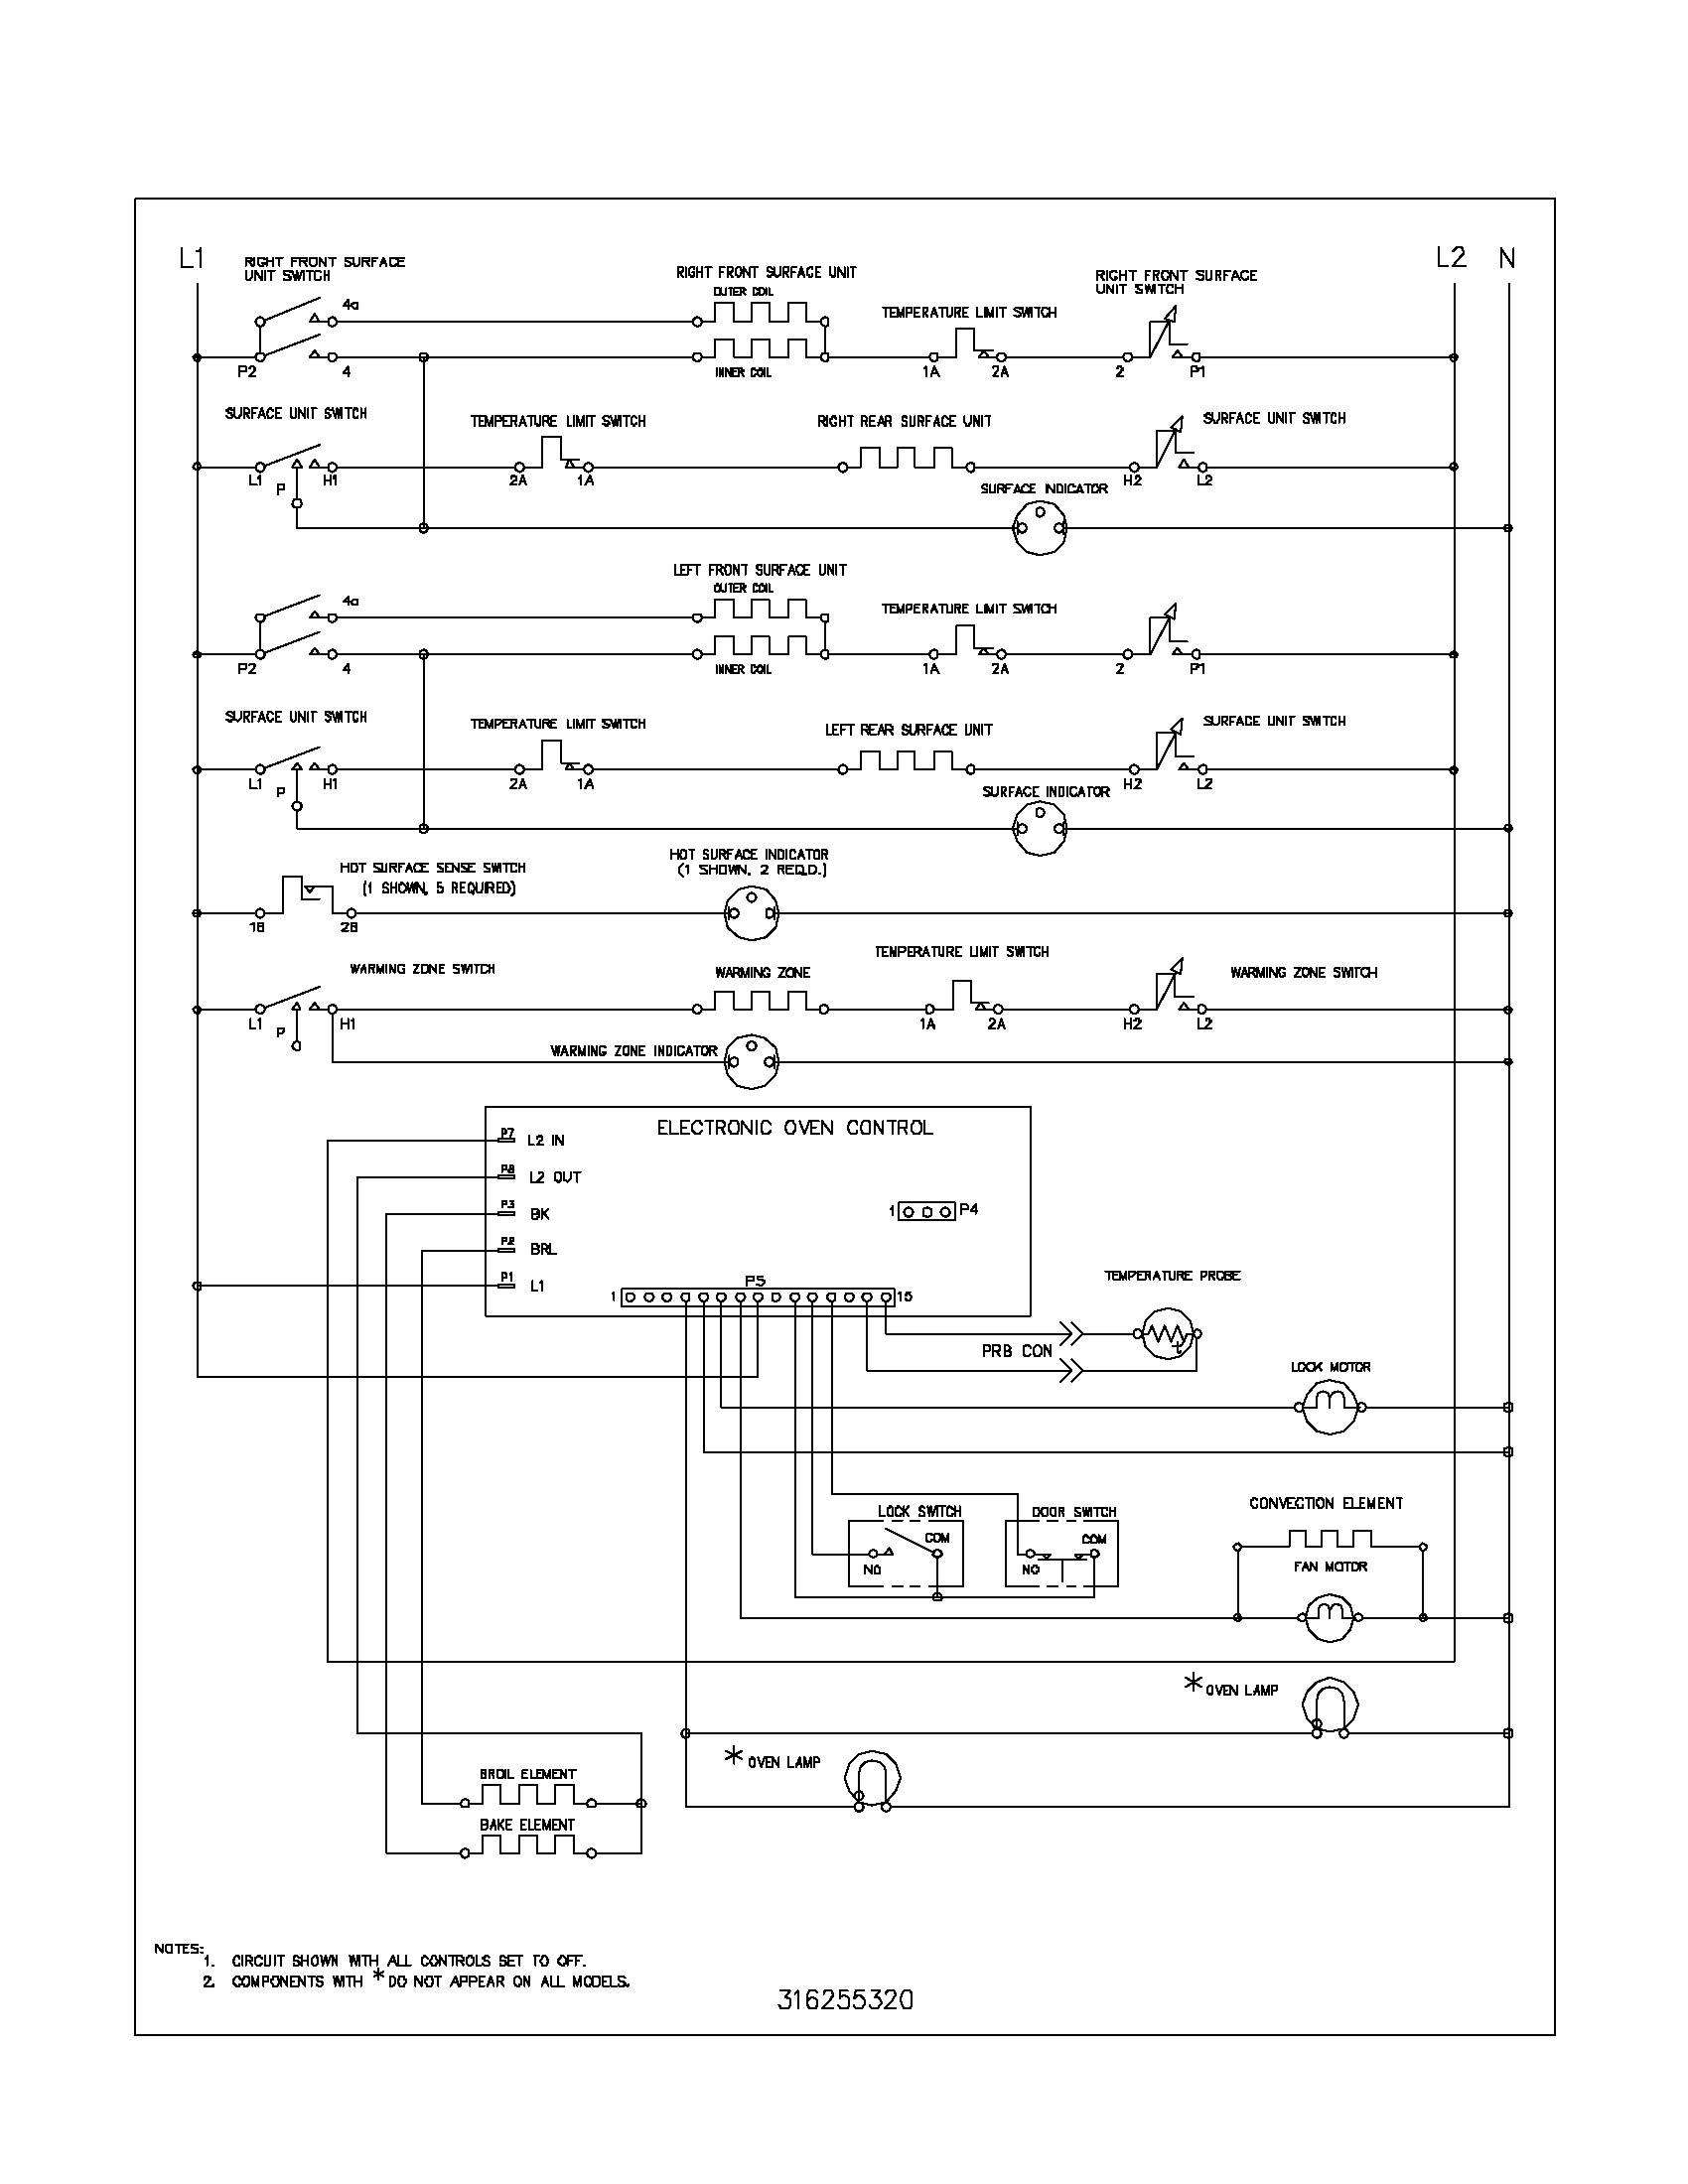 Wonderful Lionel Wiring Schematics Images ufc204 diagram – Lionel Zw Wiring-diagram